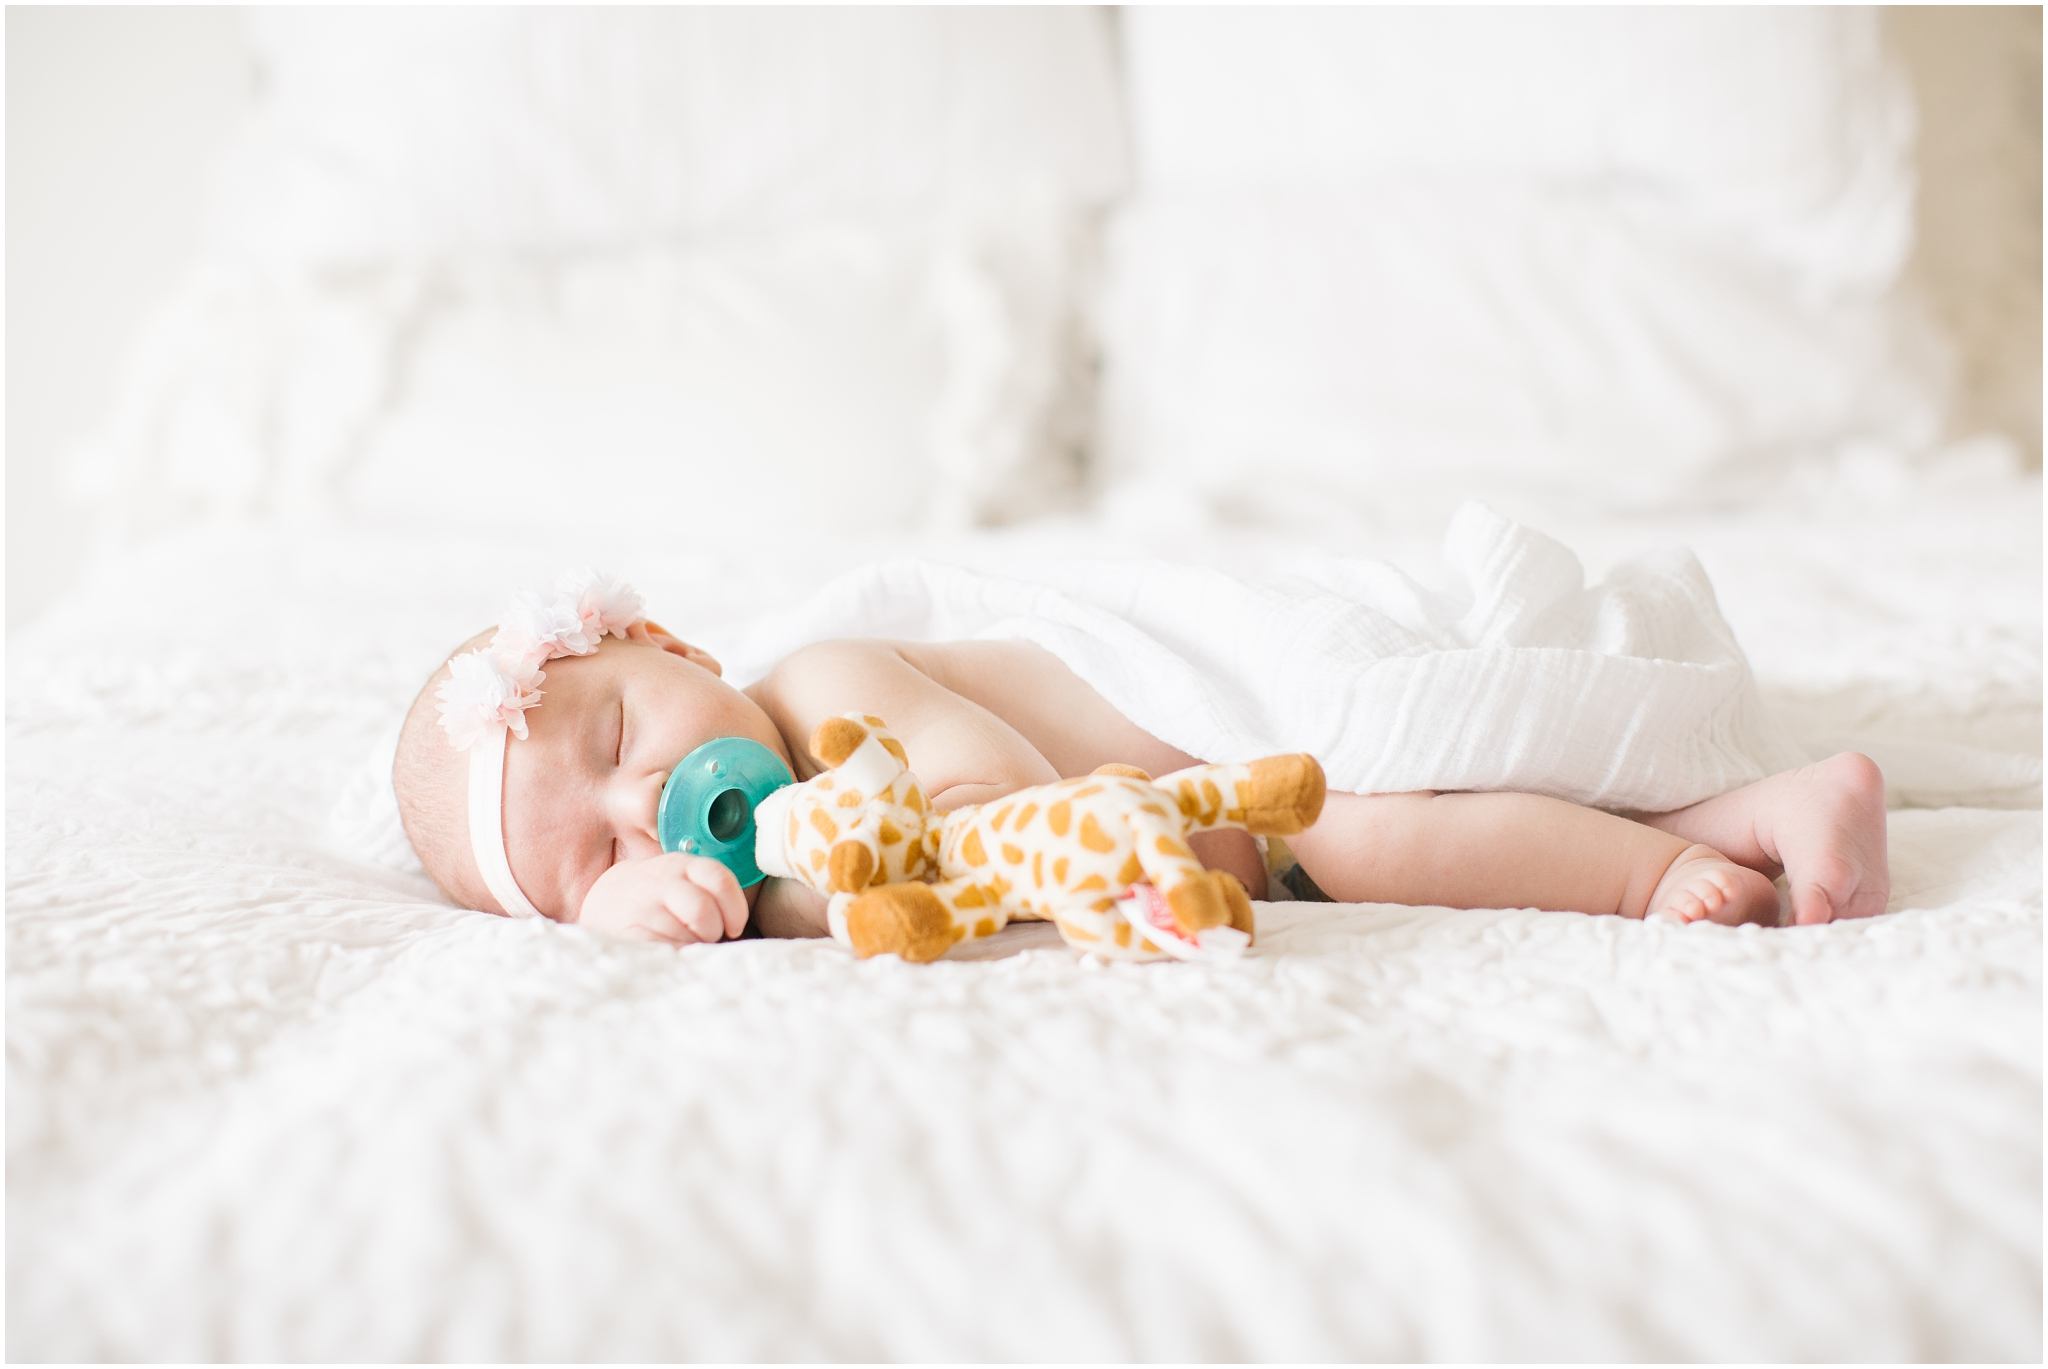 Autumn-83_Lizzie-B-Imagery-Utah-Family-Photographer-Central-Utah-Photographer-Utah-County-Newborn.jpg